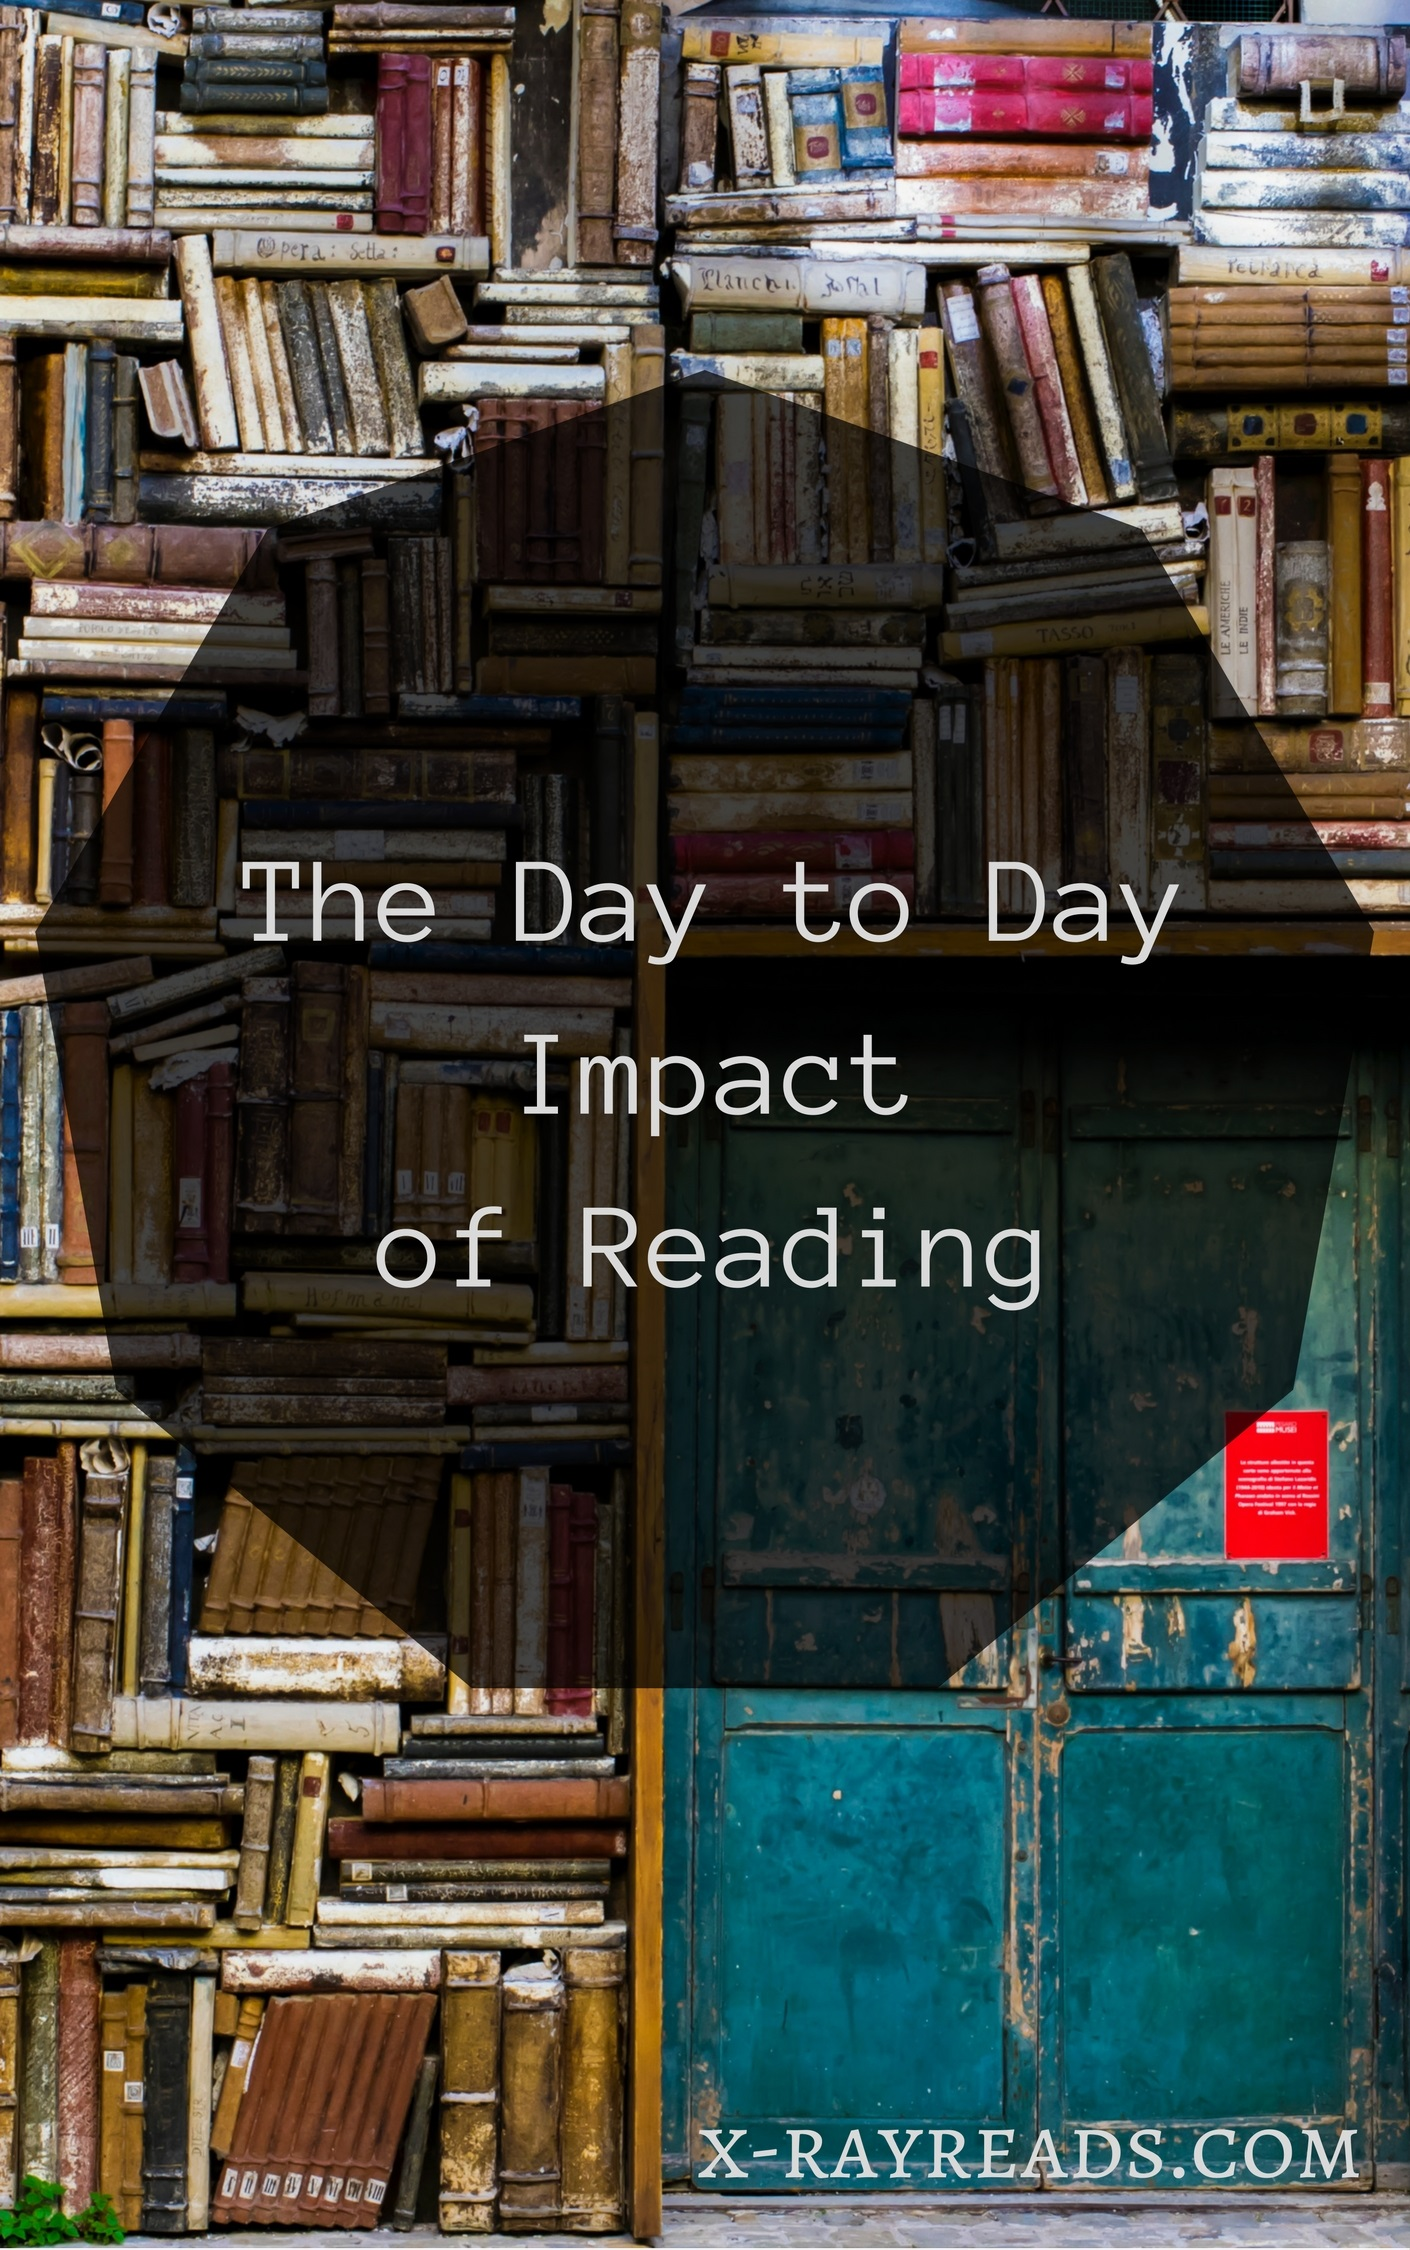 The Day to Day Impactof Reading